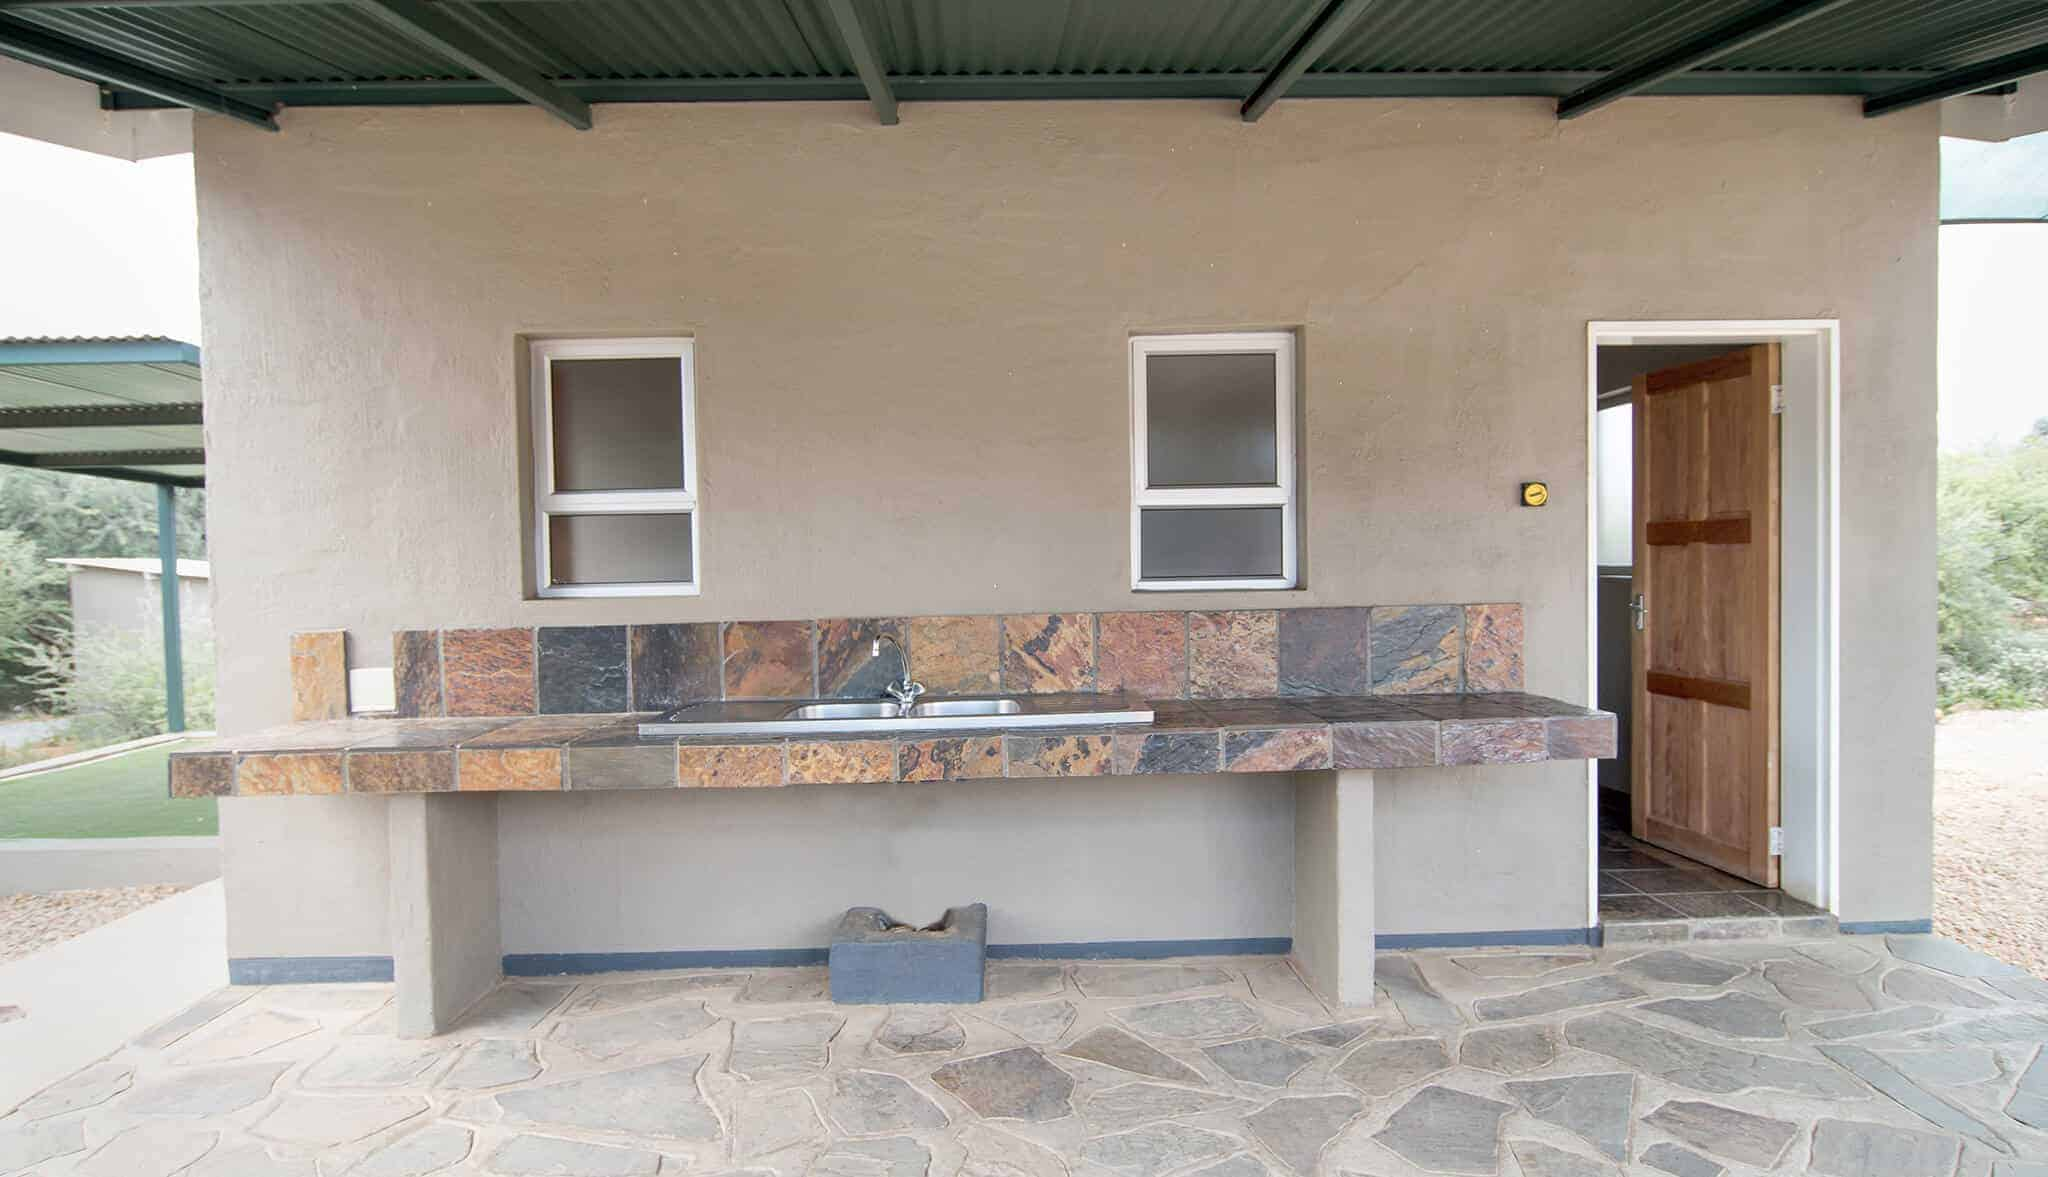 Luxury camping & caravanning sites | Private kitchen facilities | Camping & caravanning sites in Windhoek | Arebbusch Travel Lodge